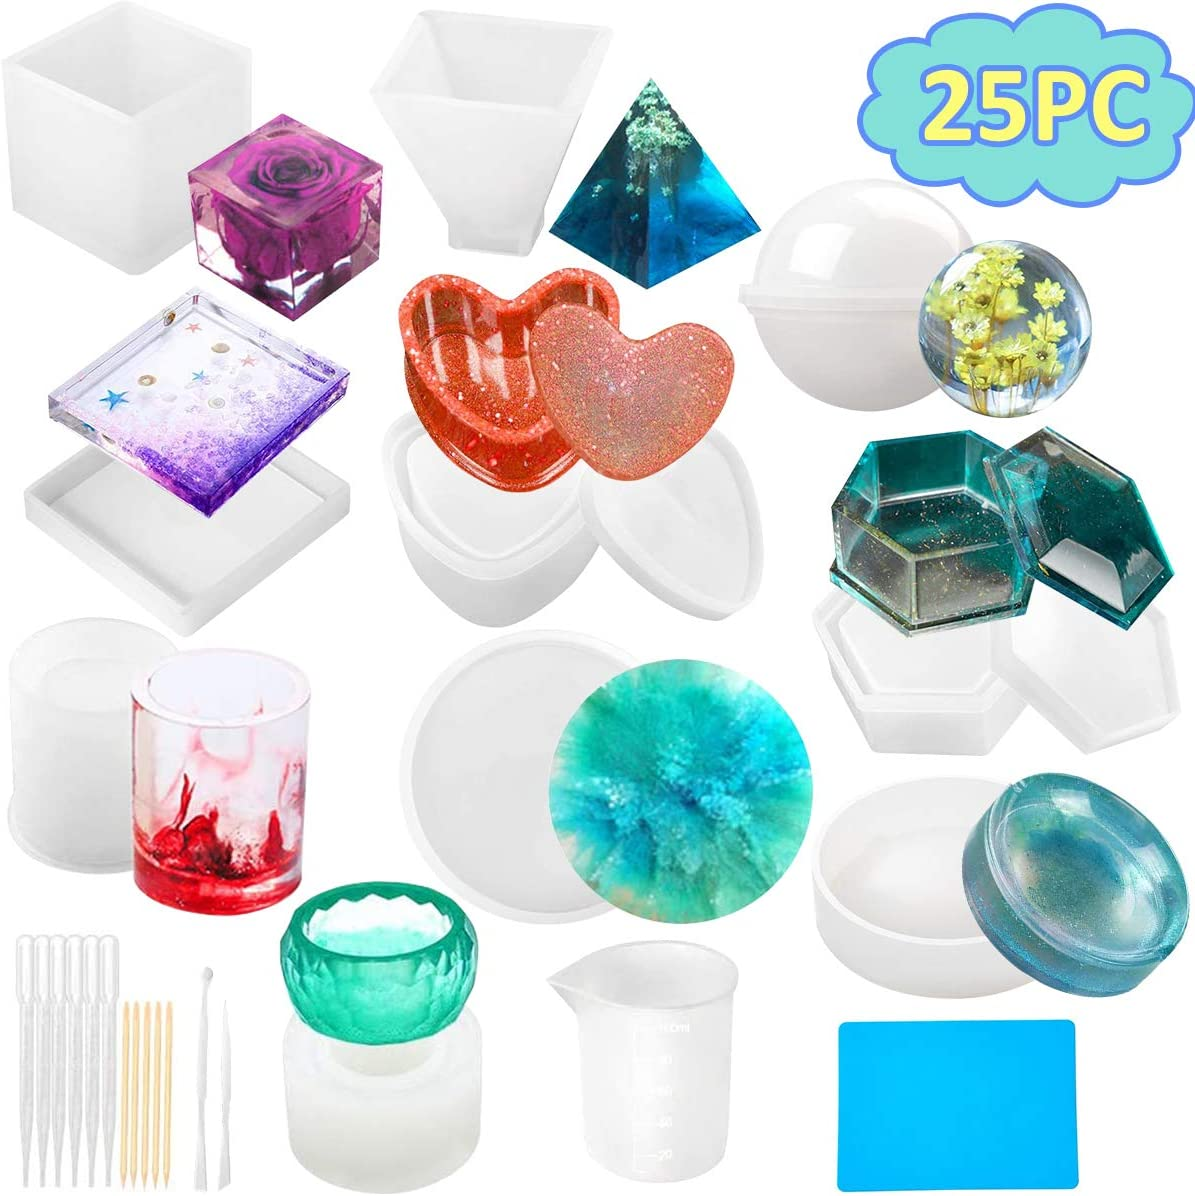 25PCS Silicone Resin Molds